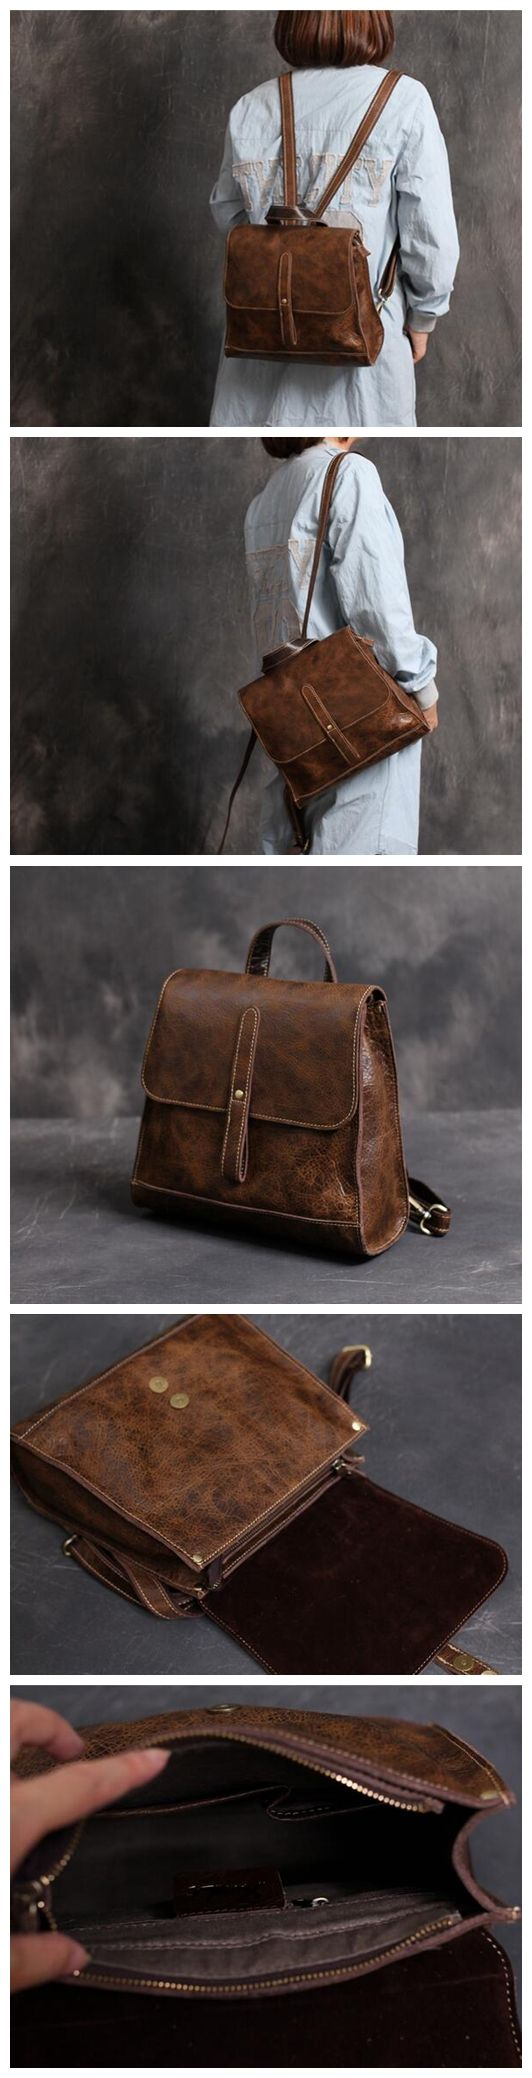 School bag new york - New Arrival Fashion Bag Vintage Backpack College Students School Bag Xl01